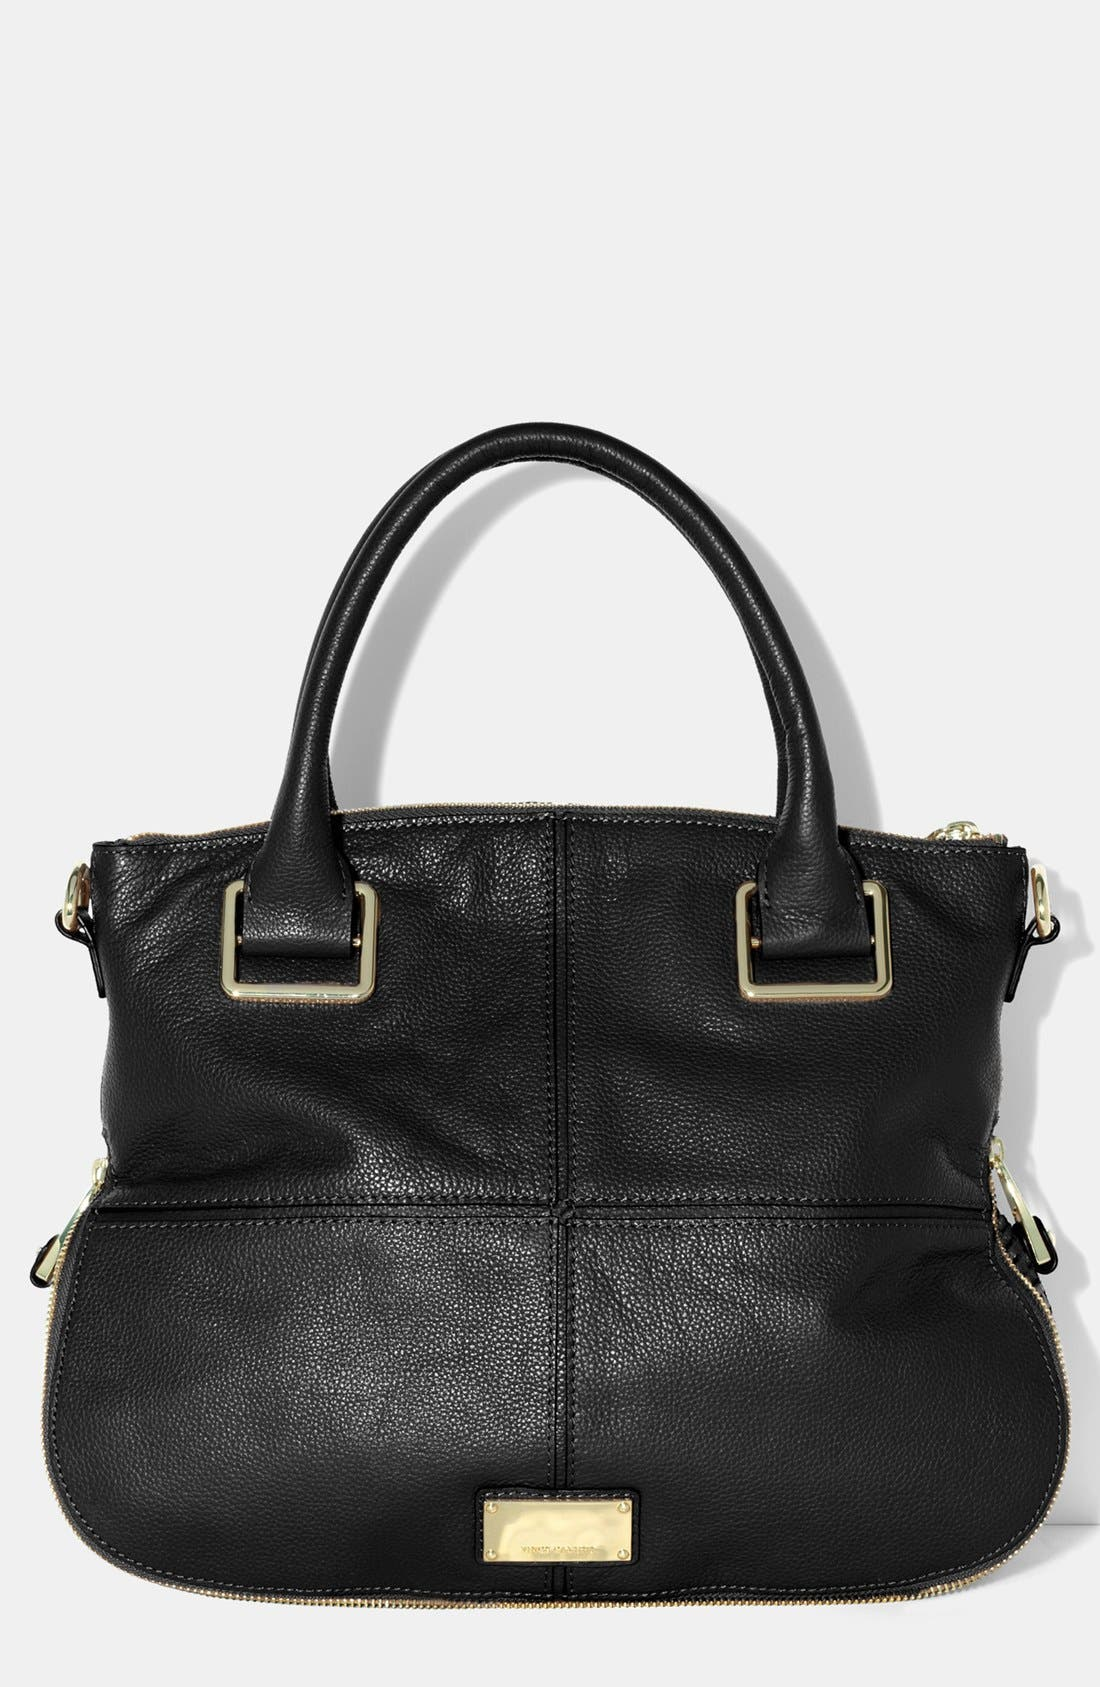 Alternate Image 1 Selected - Vince Camuto 'Iris' Satchel, Medium